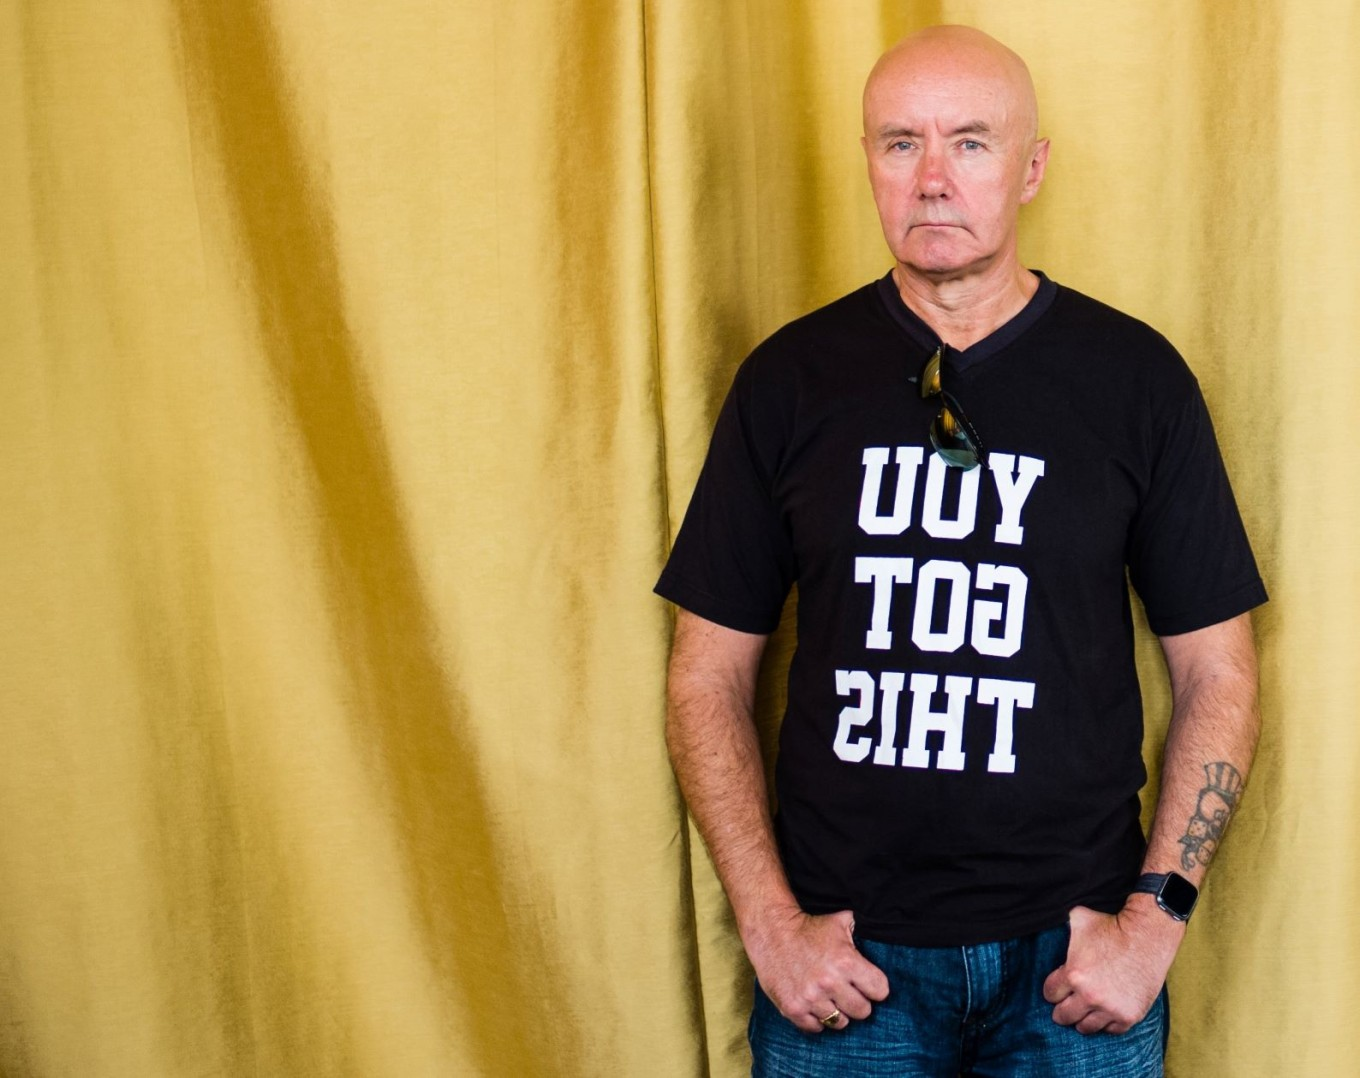 'Trainspotting' author Irvine Welsh's lust for life